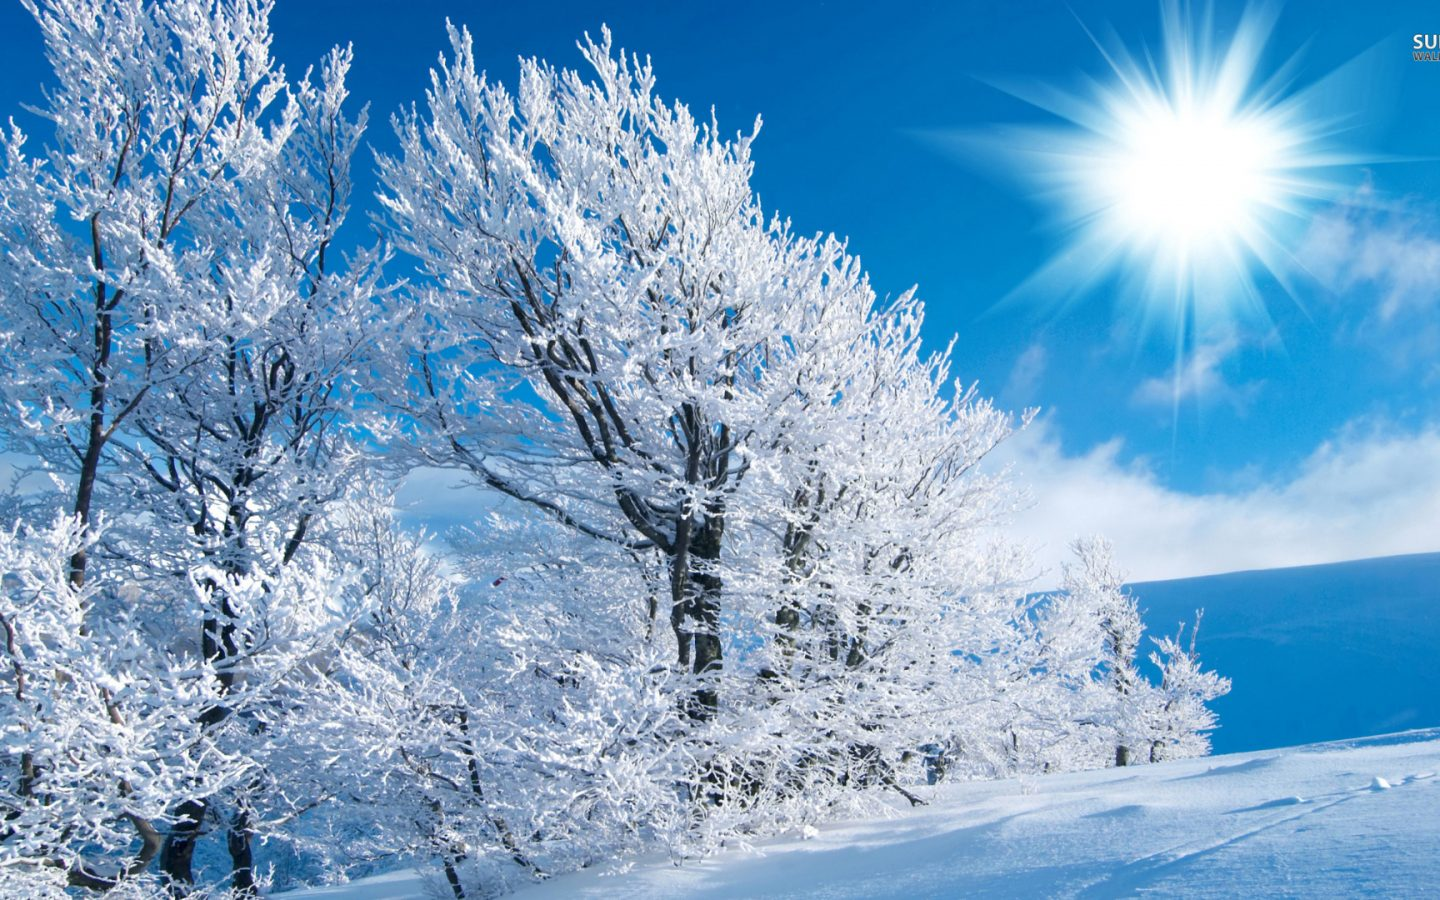 Winter wide wallpaper 1920 1080 hd wallpapers hd for 1080 by 1920 wallpaper